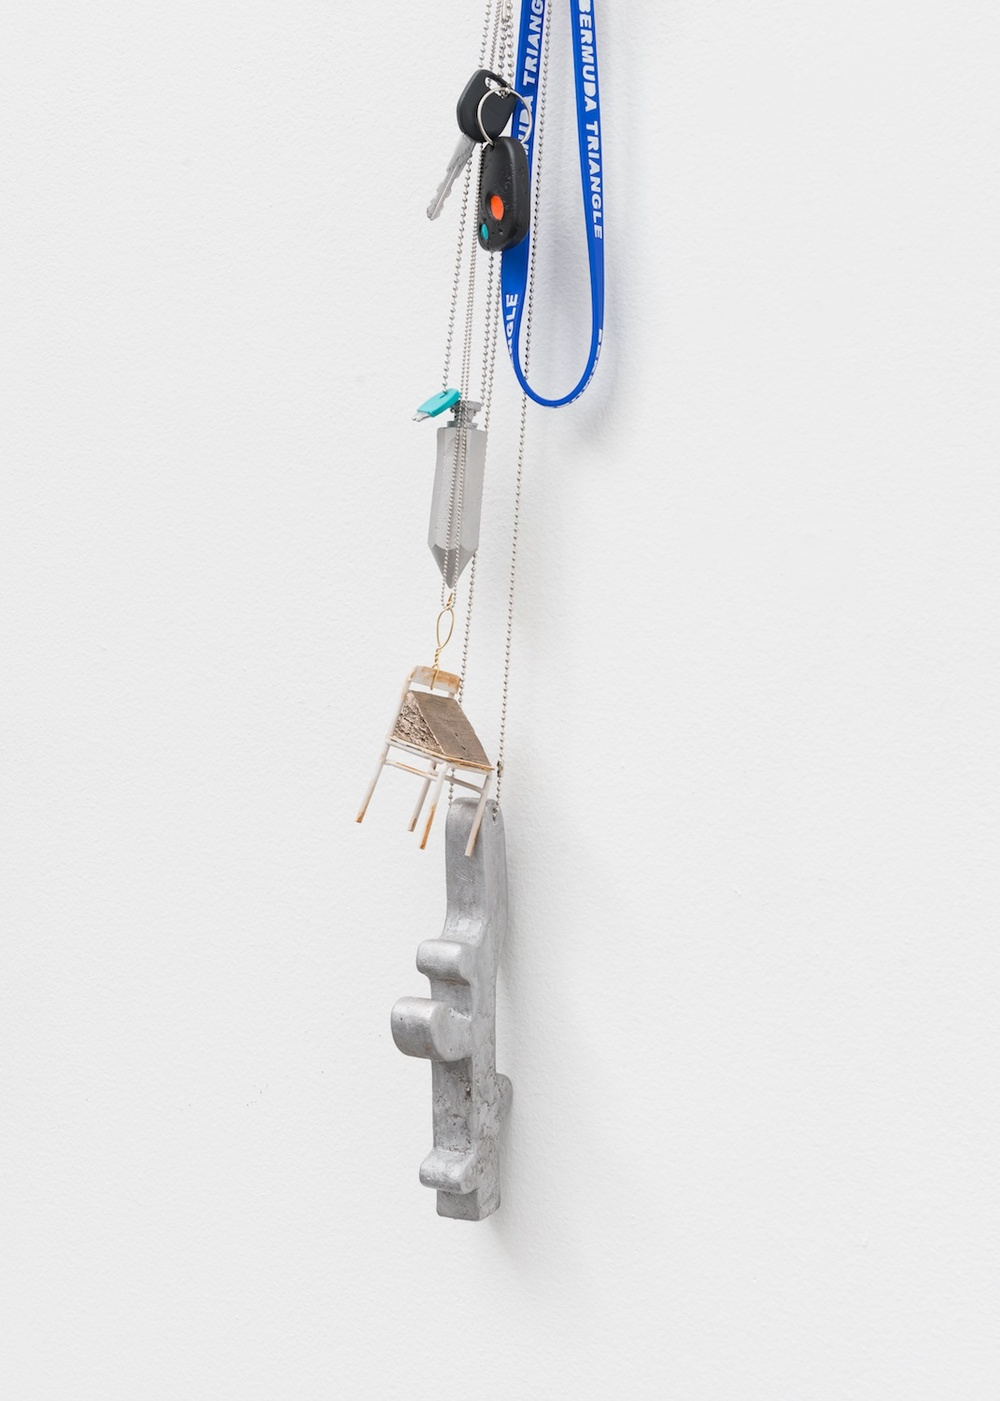 "Chris Bradley Untitled Token 2015 Acrylic paint on cast bronze, acrylic paint on steel, wire, key rings, painted wood, ball chains, hardware 52"" x 6"" x 4"" CB141"